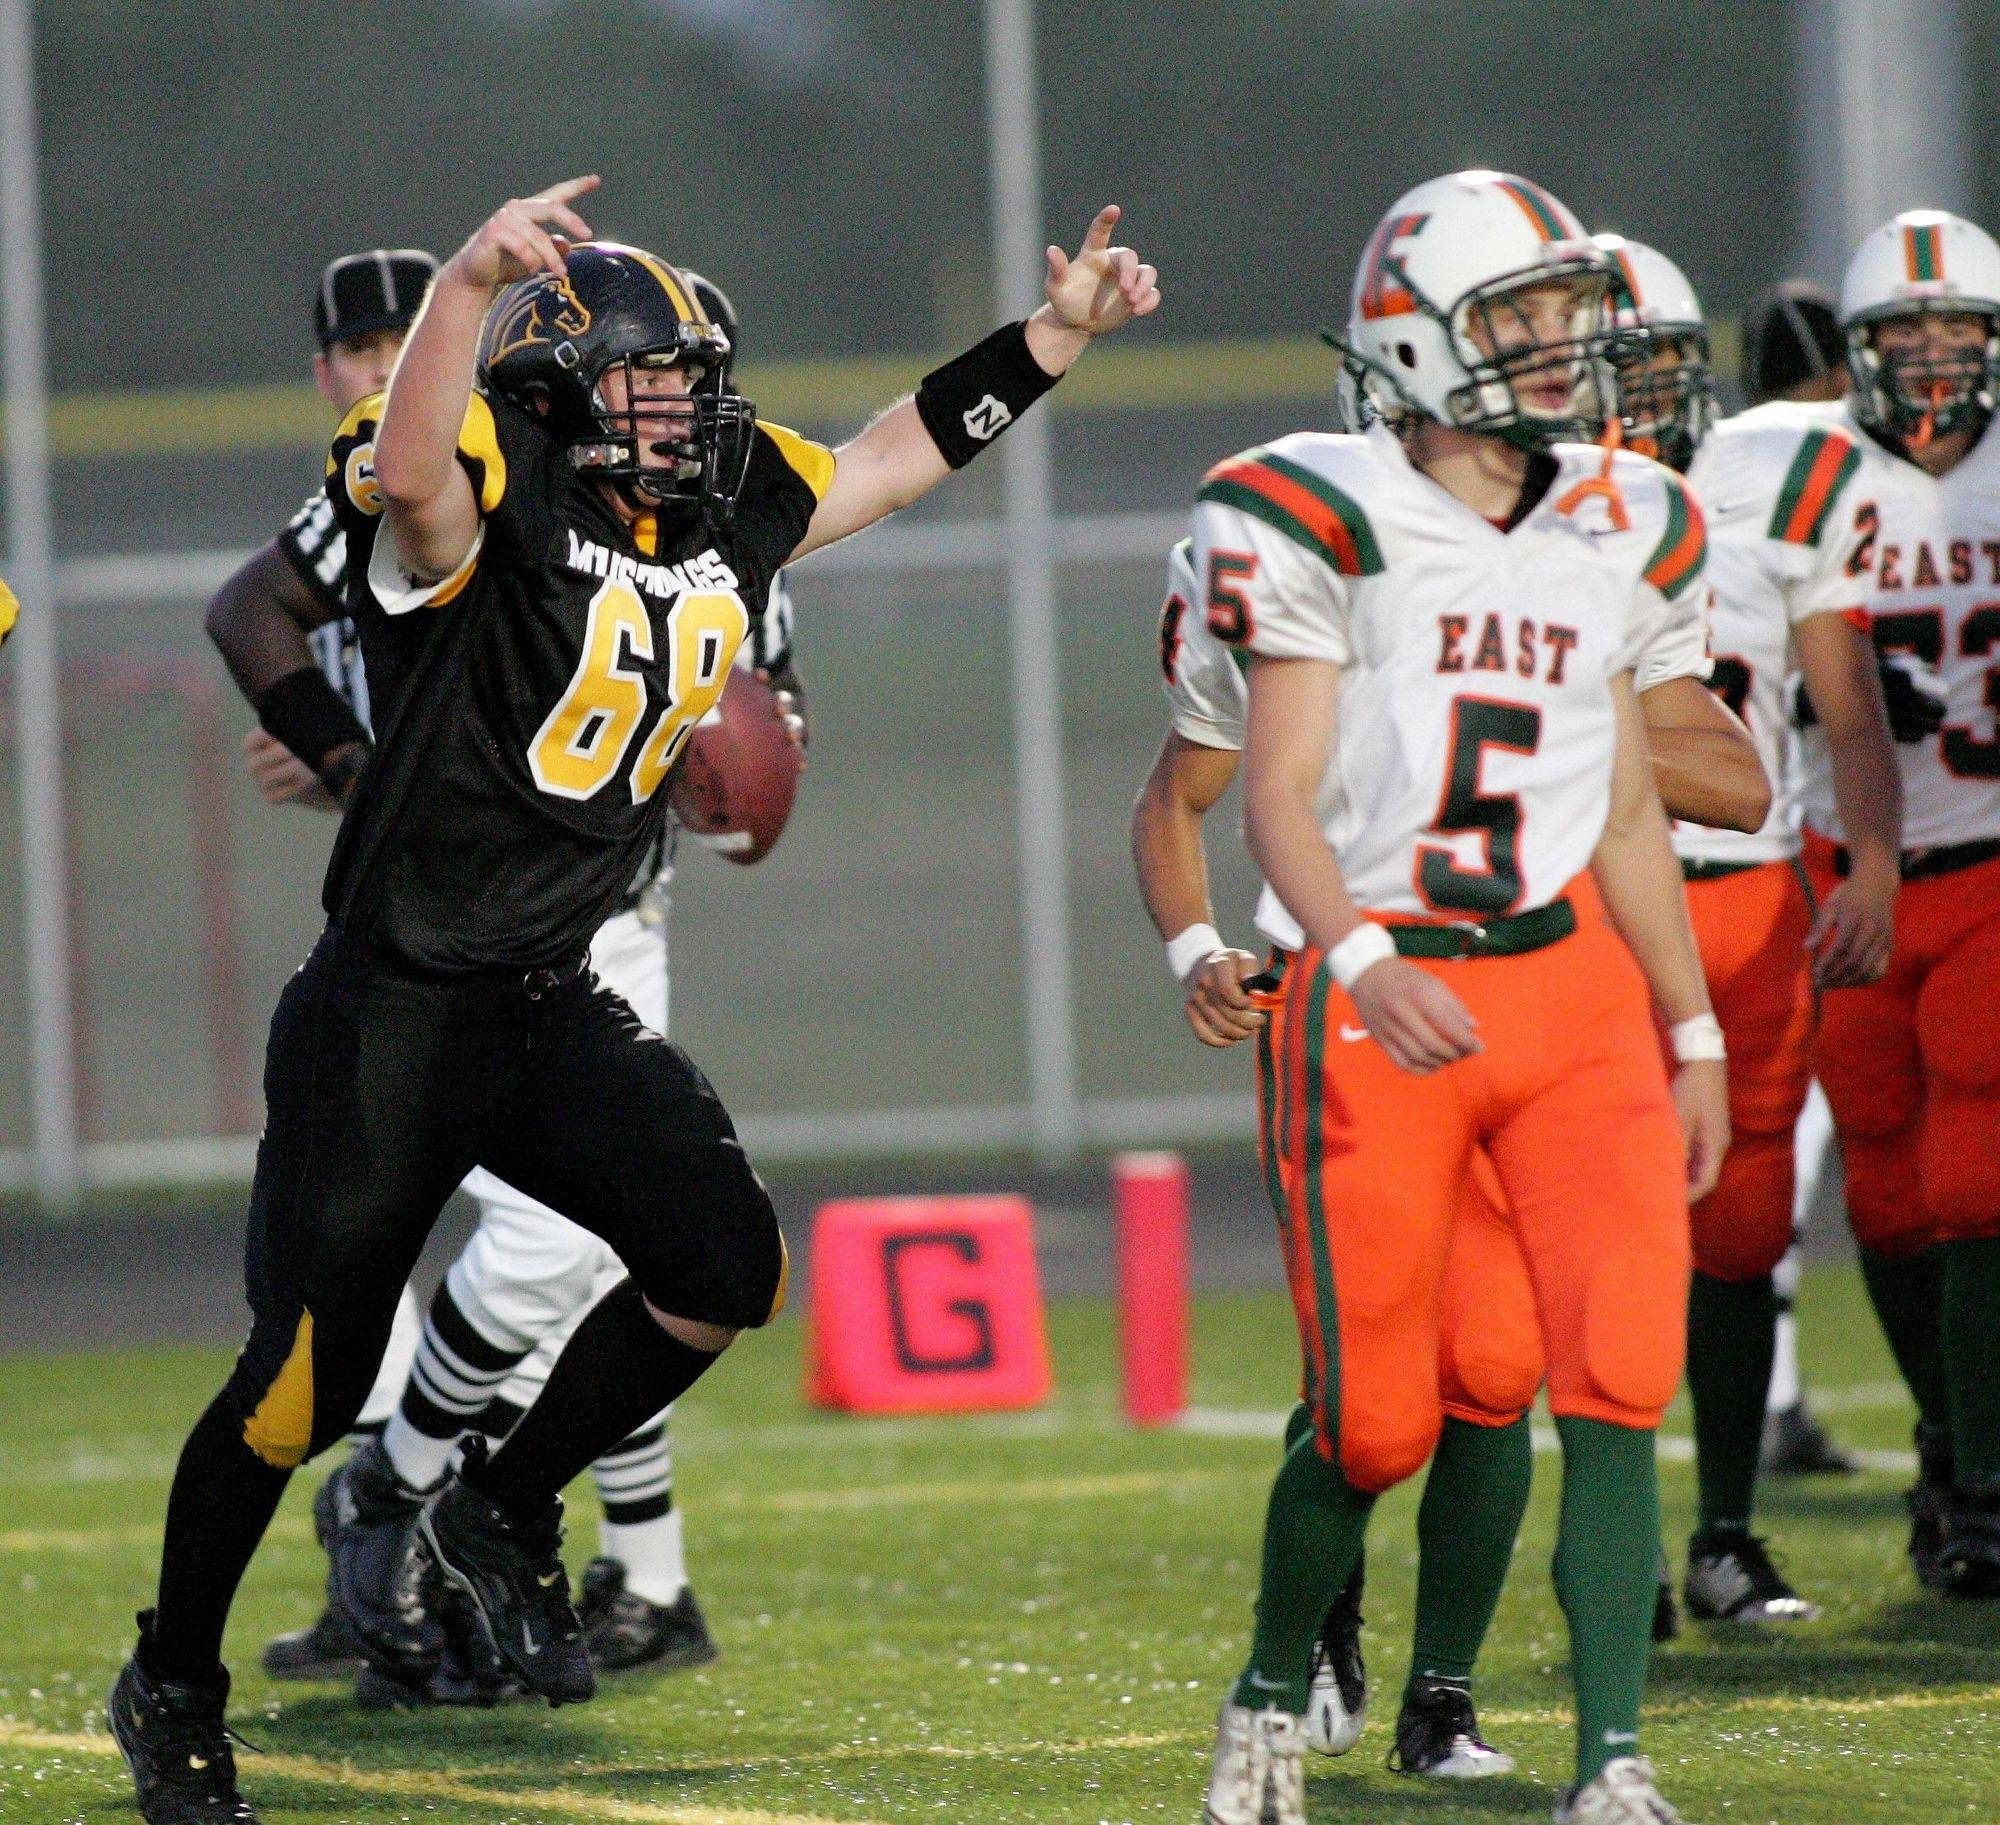 WEEK 1- Matt Stewart of Metea Valley celebrates after the first touchdown for the Mustangs by Alex Hagemaster against Plainfield East.